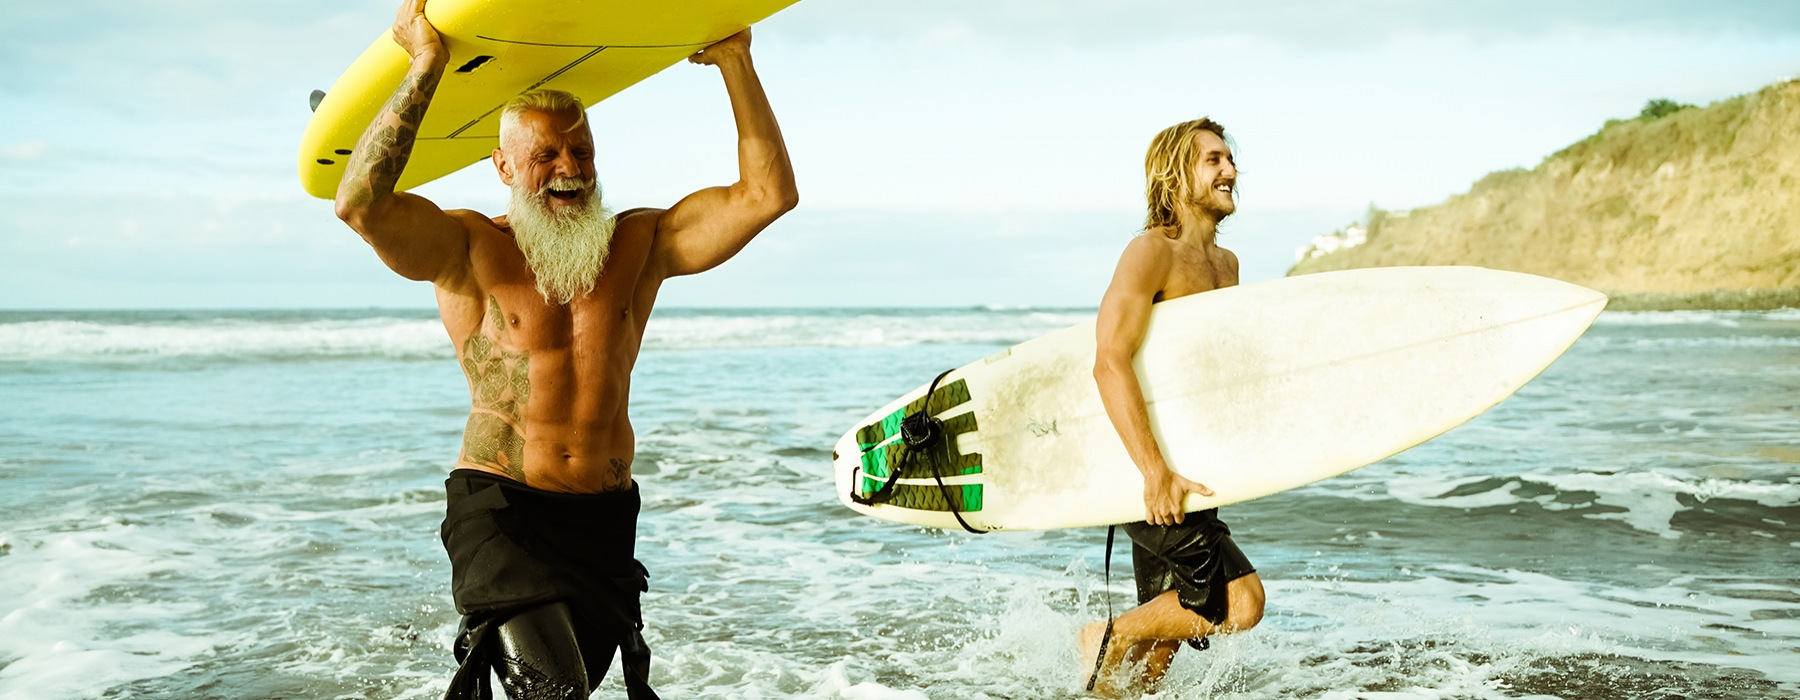 stock image of two men surfing